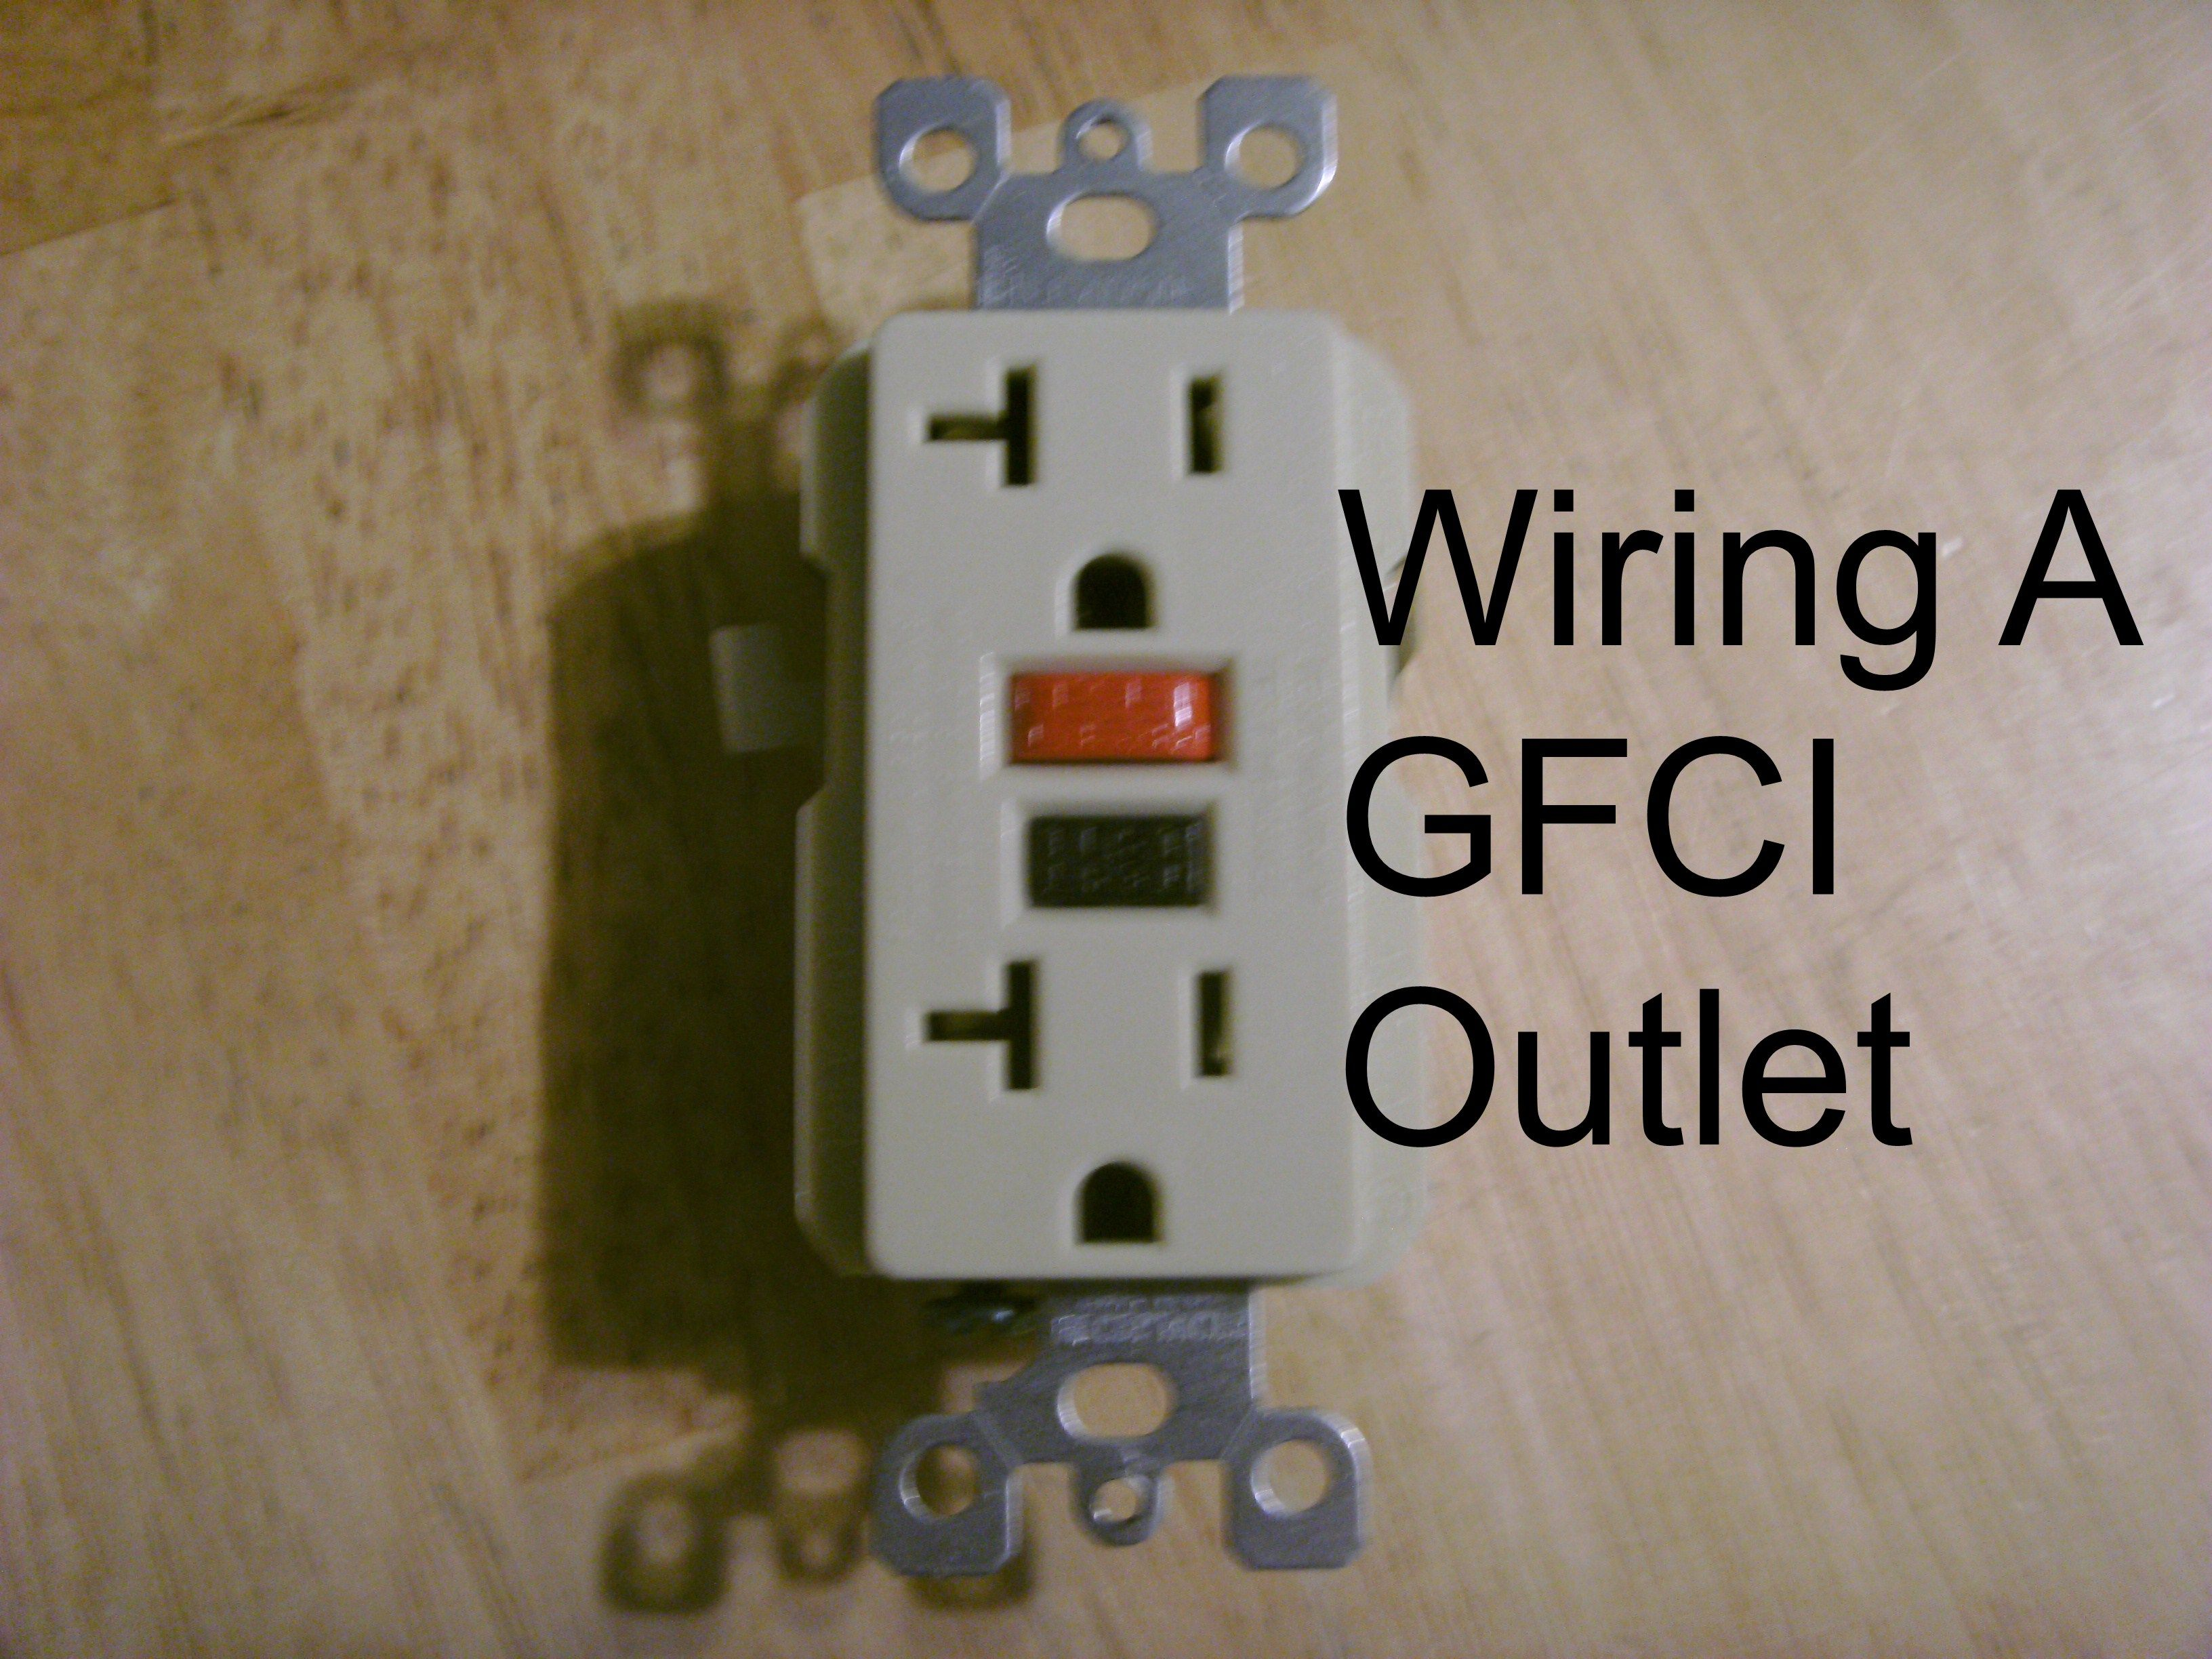 How To Install A Gfci Outlet Outlets Electrical Wiring And House